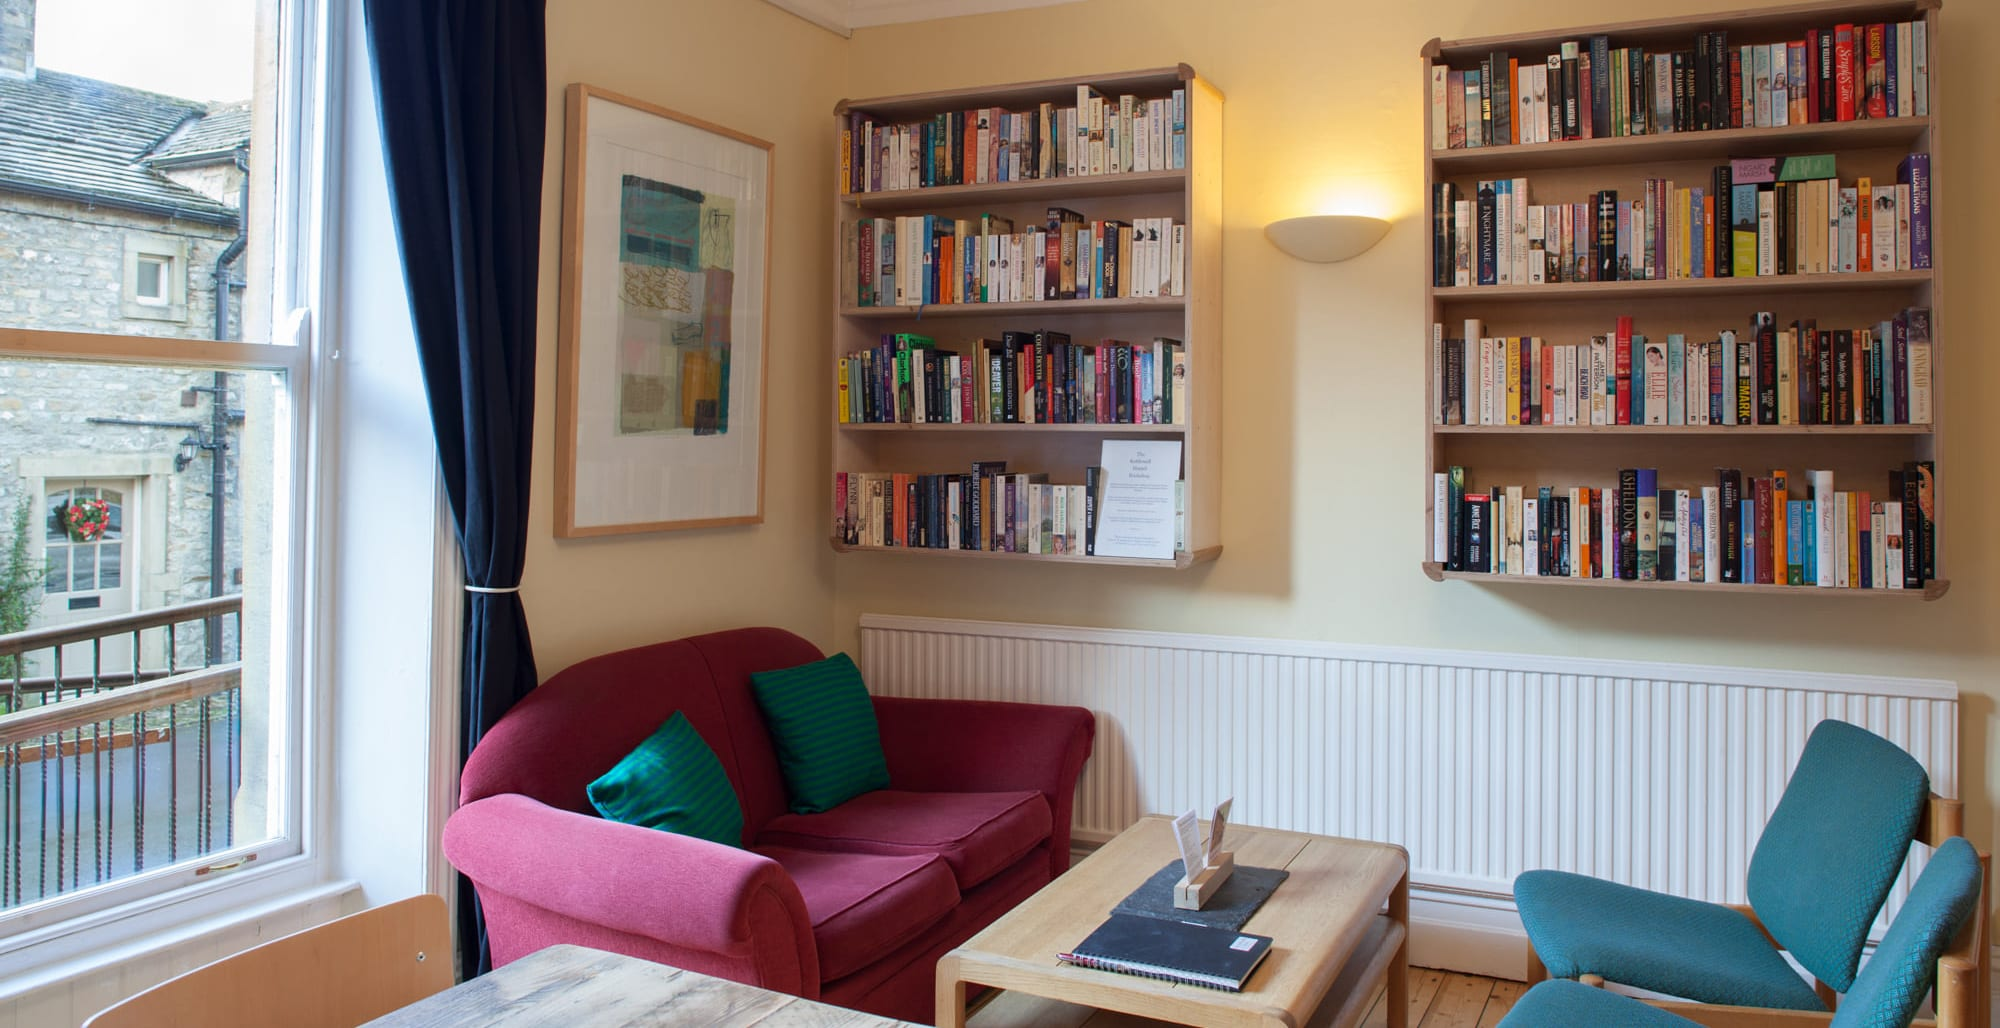 Well stocked bookcases at Kettlewell Hostel